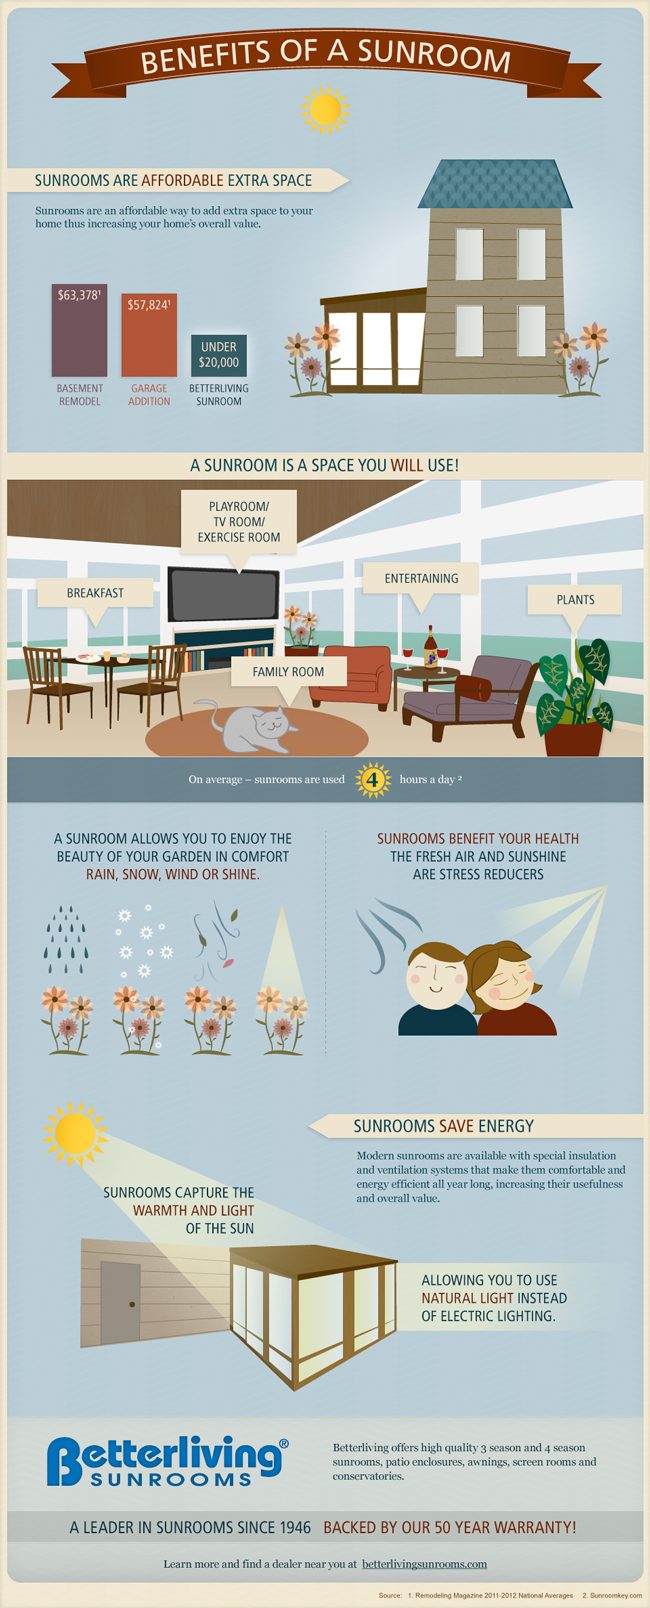 Benefits of a Sunroom infographic